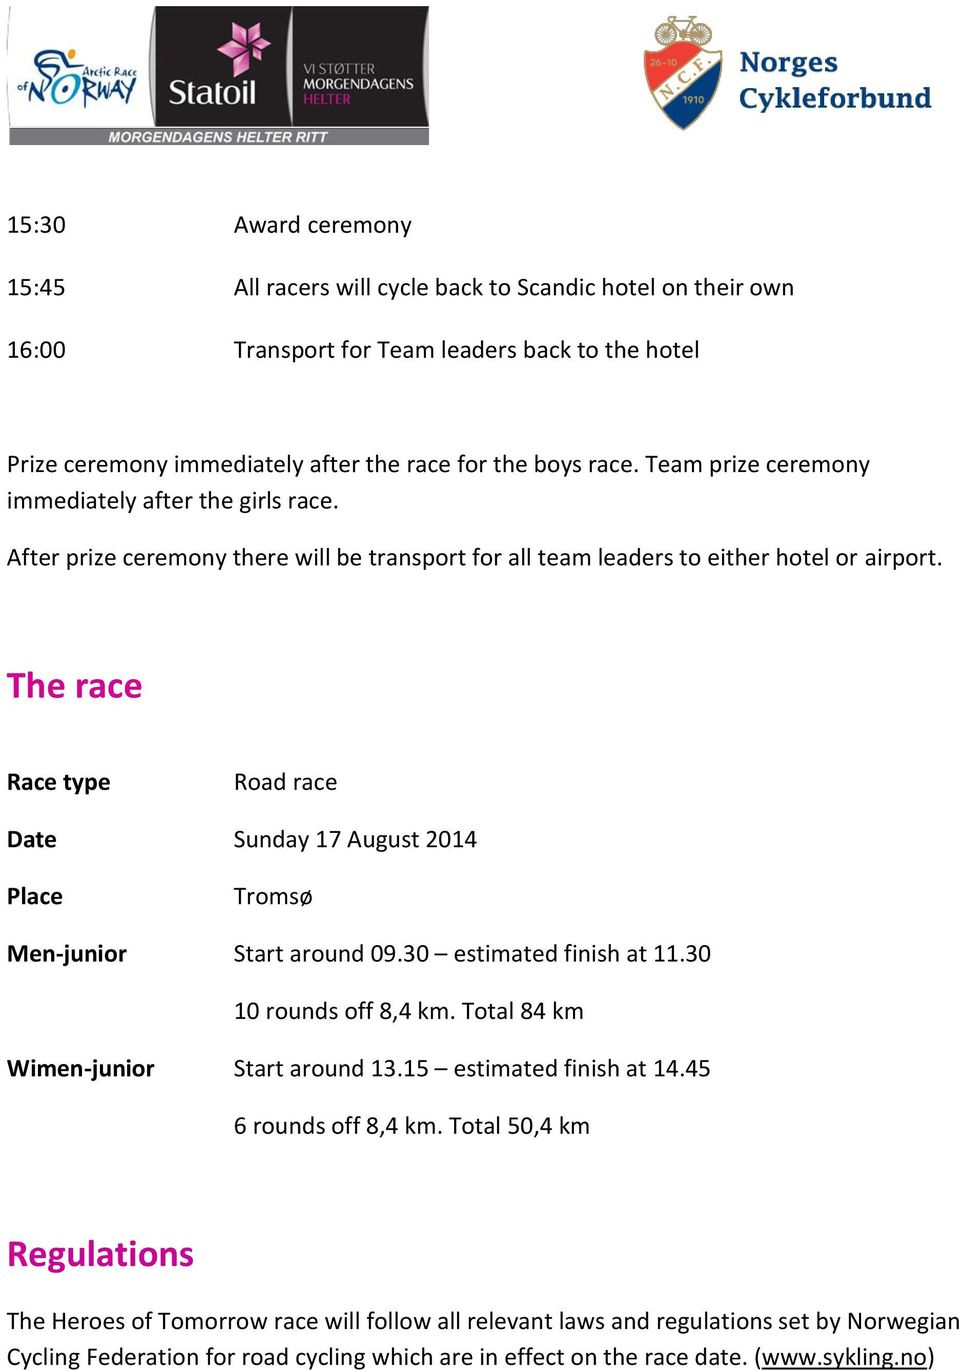 The race Race type Road race Date Sunday 17 August 2014 Place Tromsø Men-junior Start around 09.30 estimated finish at 11.30 10 rounds off 8,4 km. Total 84 km Wimen-junior Start around 13.